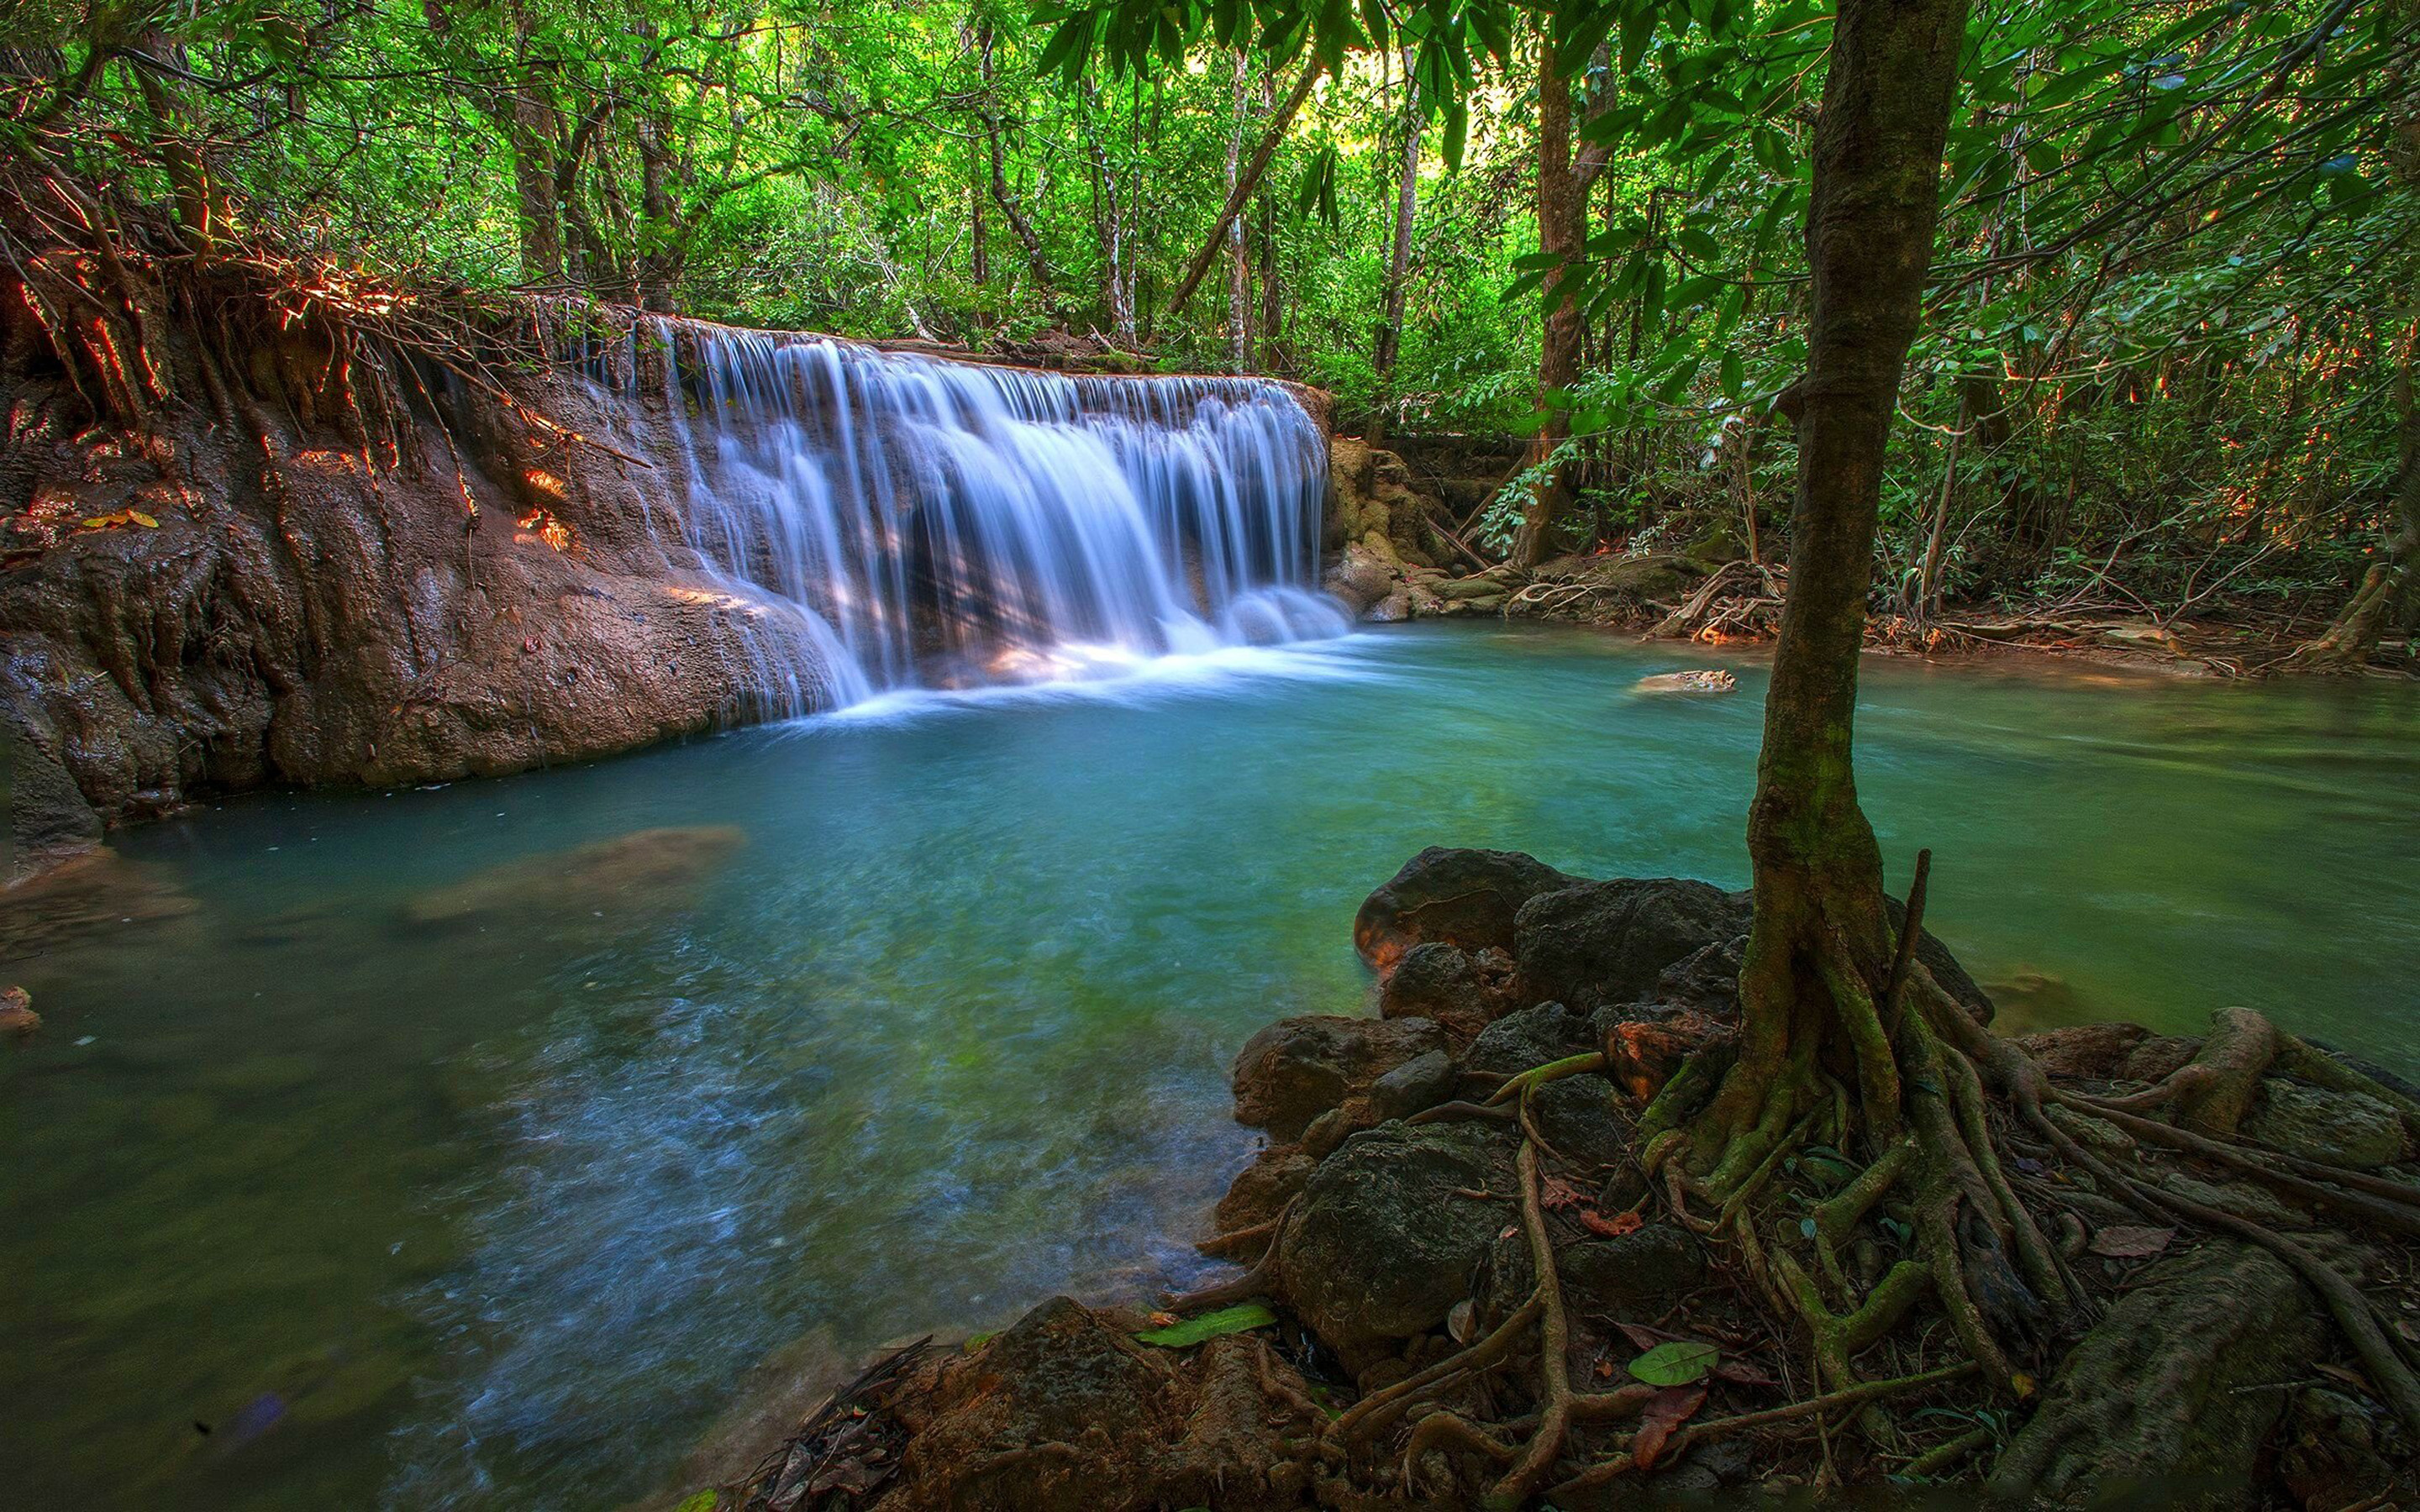 Beautiful Cars Wallpapers Free Download Wonderful Tropical Waterfall In Jungle Pool With Turquoise